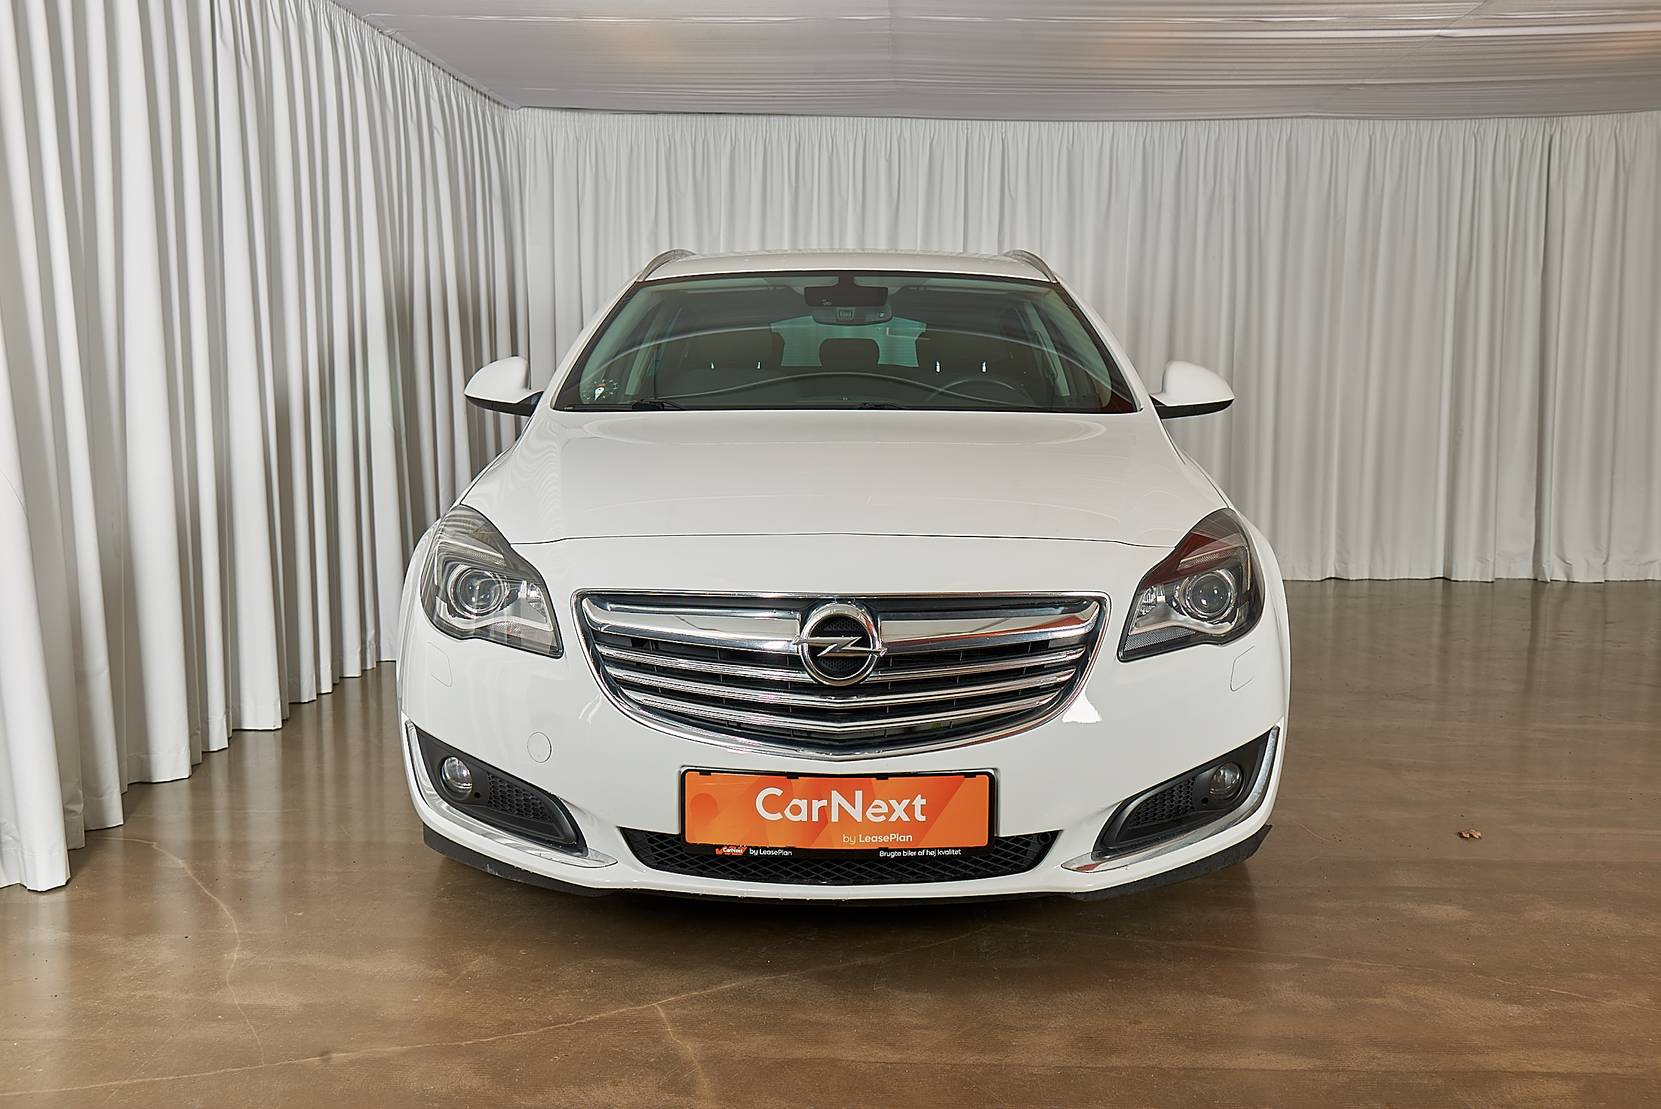 Opel Insignia 2,0 CDTi 140 Edition ST eco 5d detail2